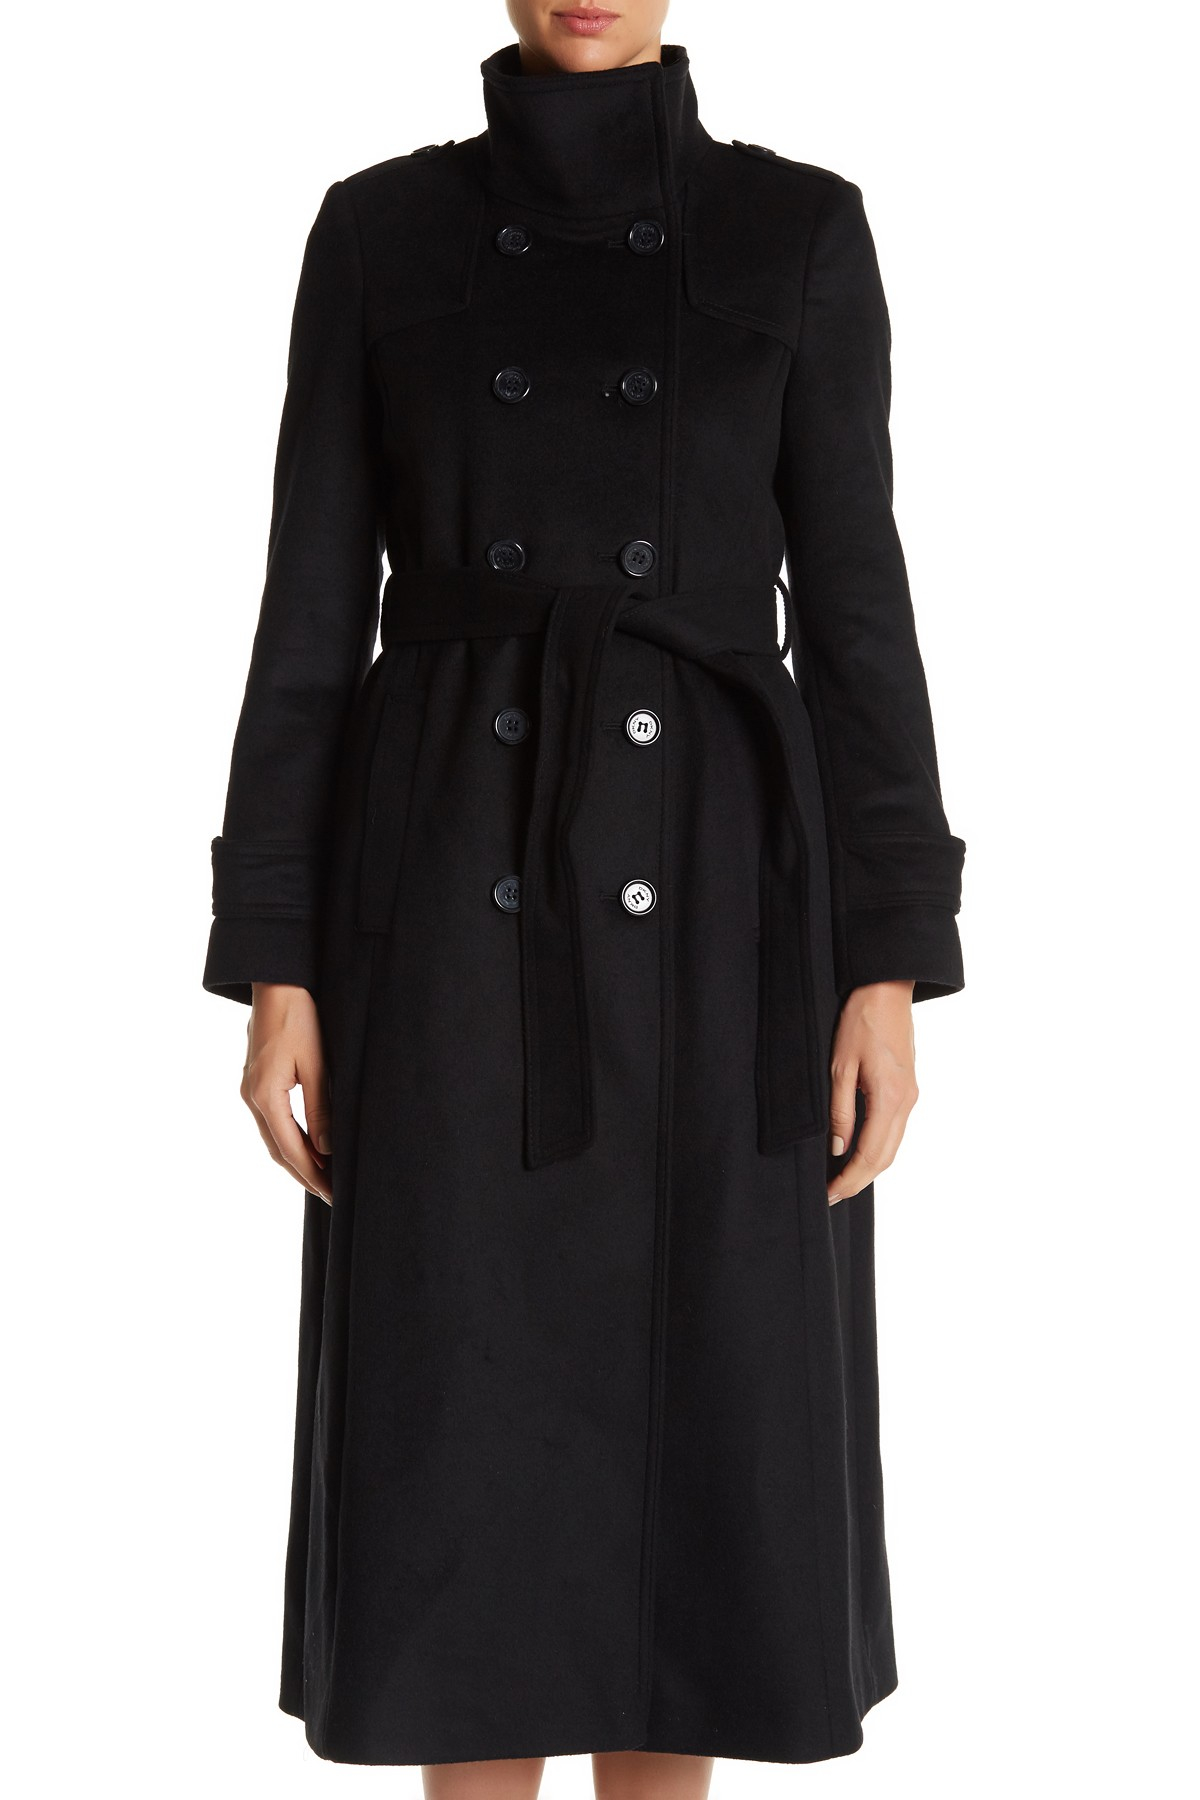 Free shipping BOTH ways on Coats & Outerwear, Women, Wool, from our vast selection of styles. Fast delivery, and 24/7/ real-person service with a smile. Click or call